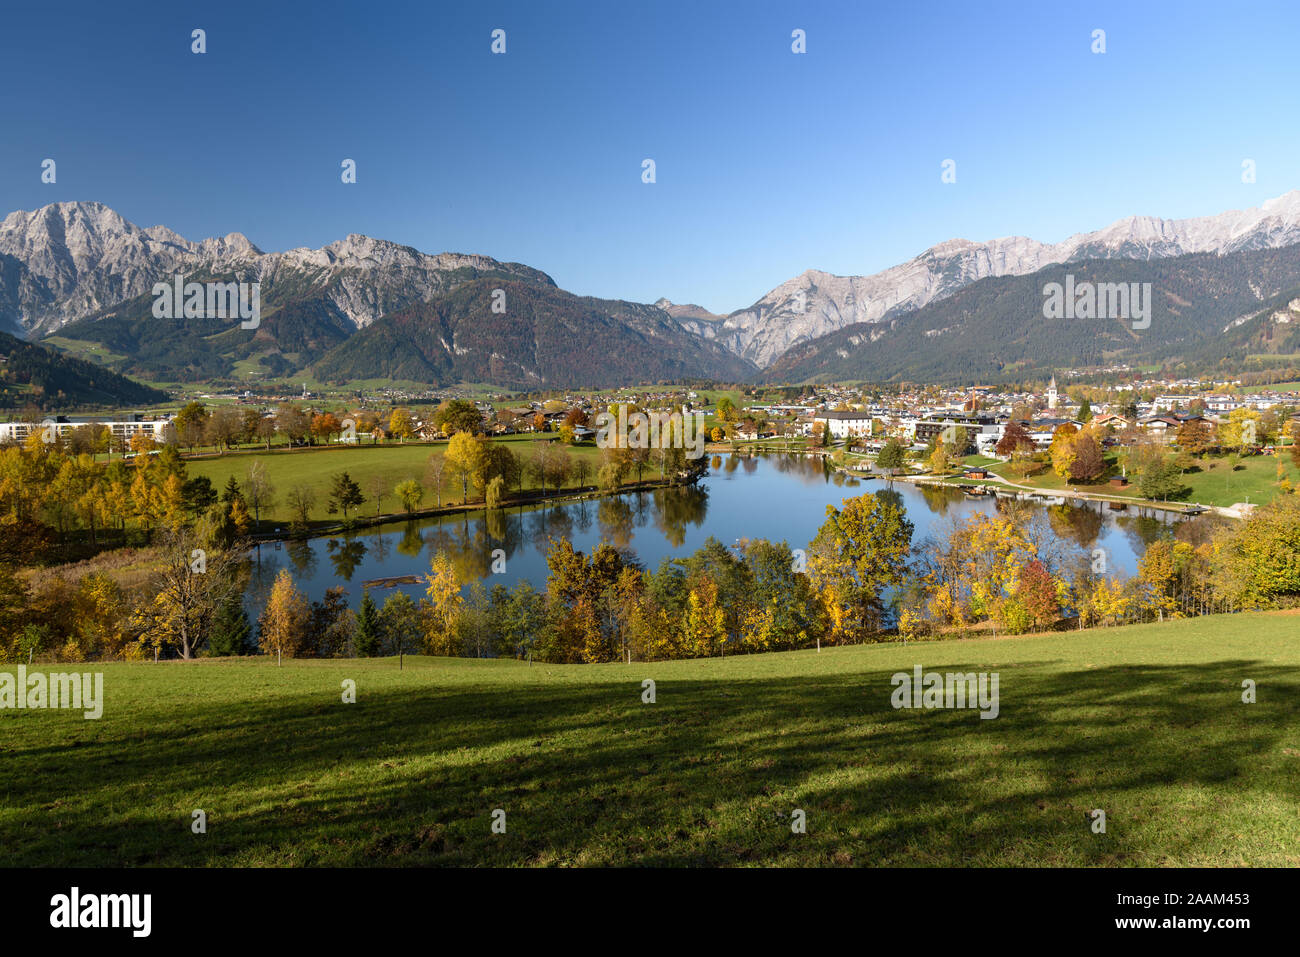 Panoramic view of Lake Ritzensee and Saalfelden on a sunny autumn day in with the mountains Steinernes Meer in the background. Saalfelden, Pinzgau, Sa Stock Photo